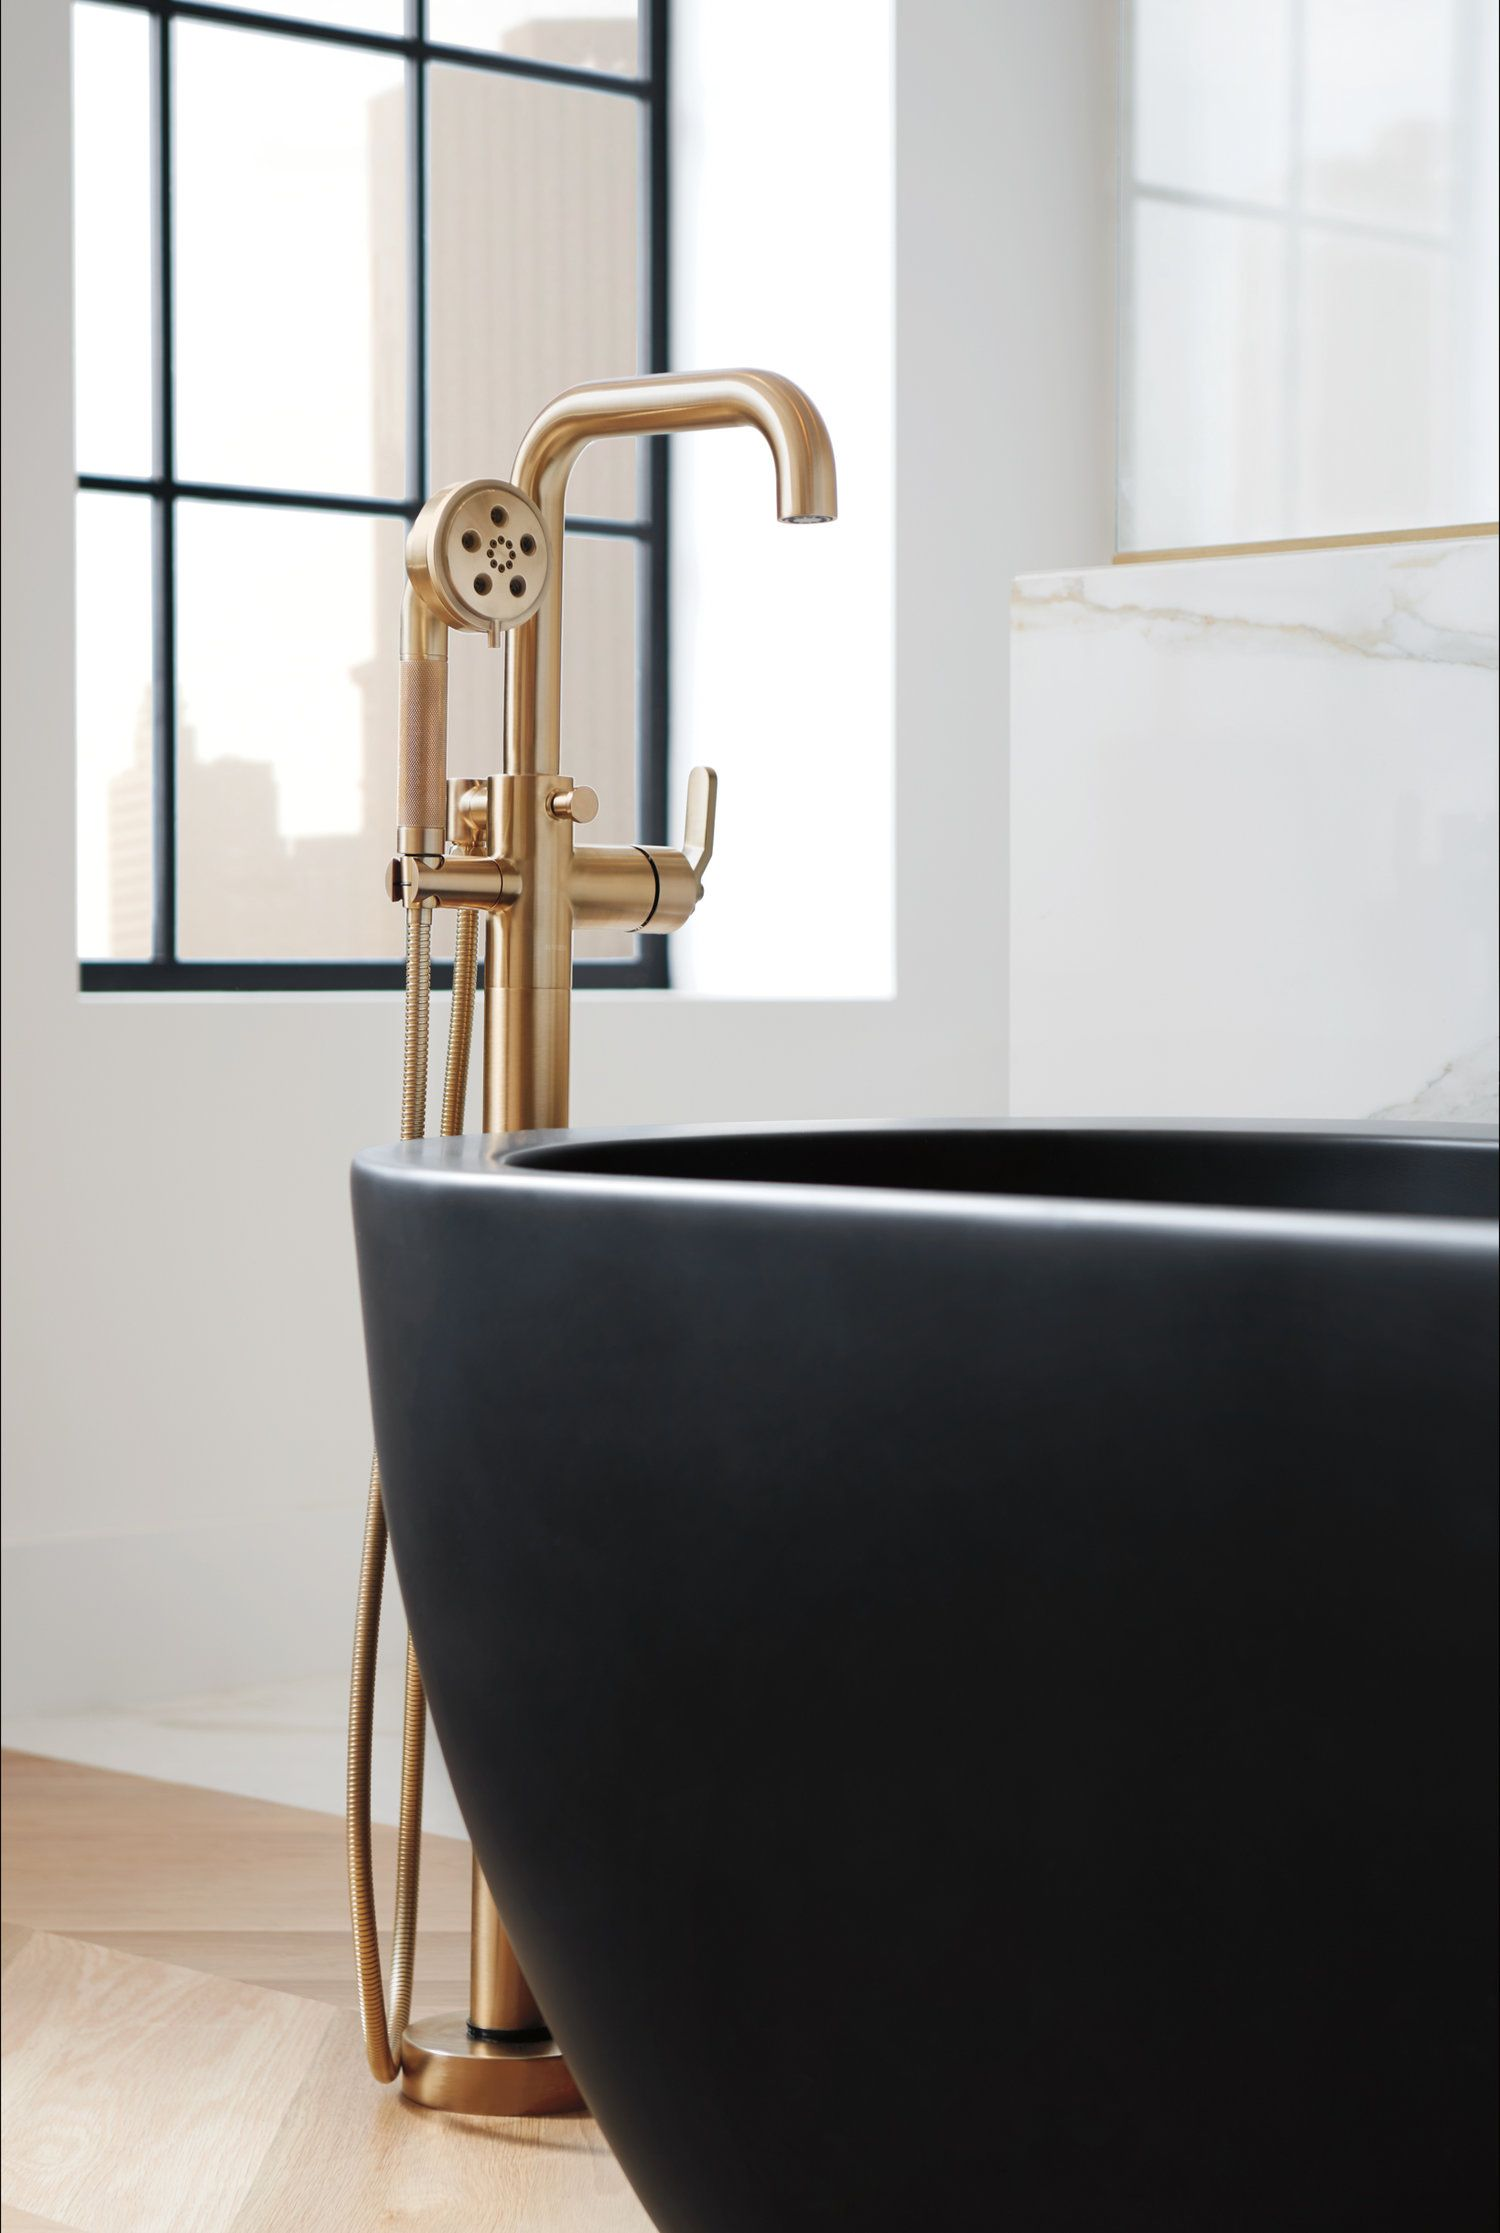 Brizo Litze Collection Minimal Modern Bathroom Showroom Interior With Black  Tub And Brass Fixtures